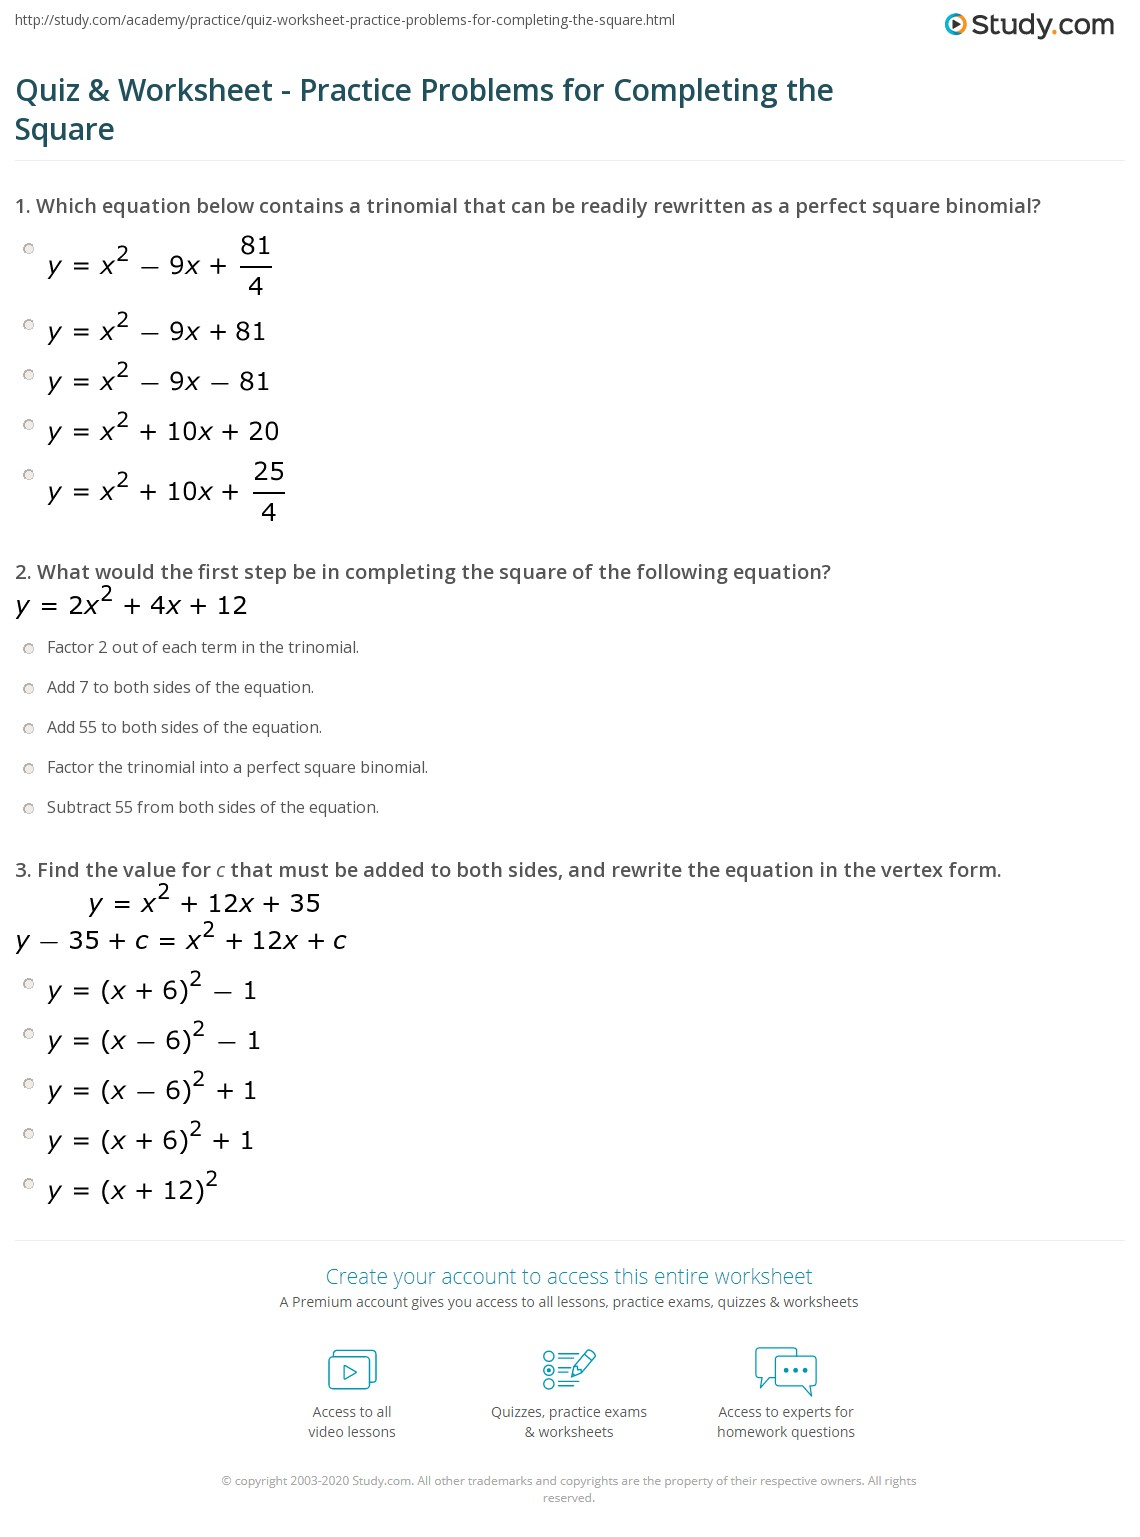 completing the square worksheet worksheets kristawiltbank free printable worksheets and activities. Black Bedroom Furniture Sets. Home Design Ideas